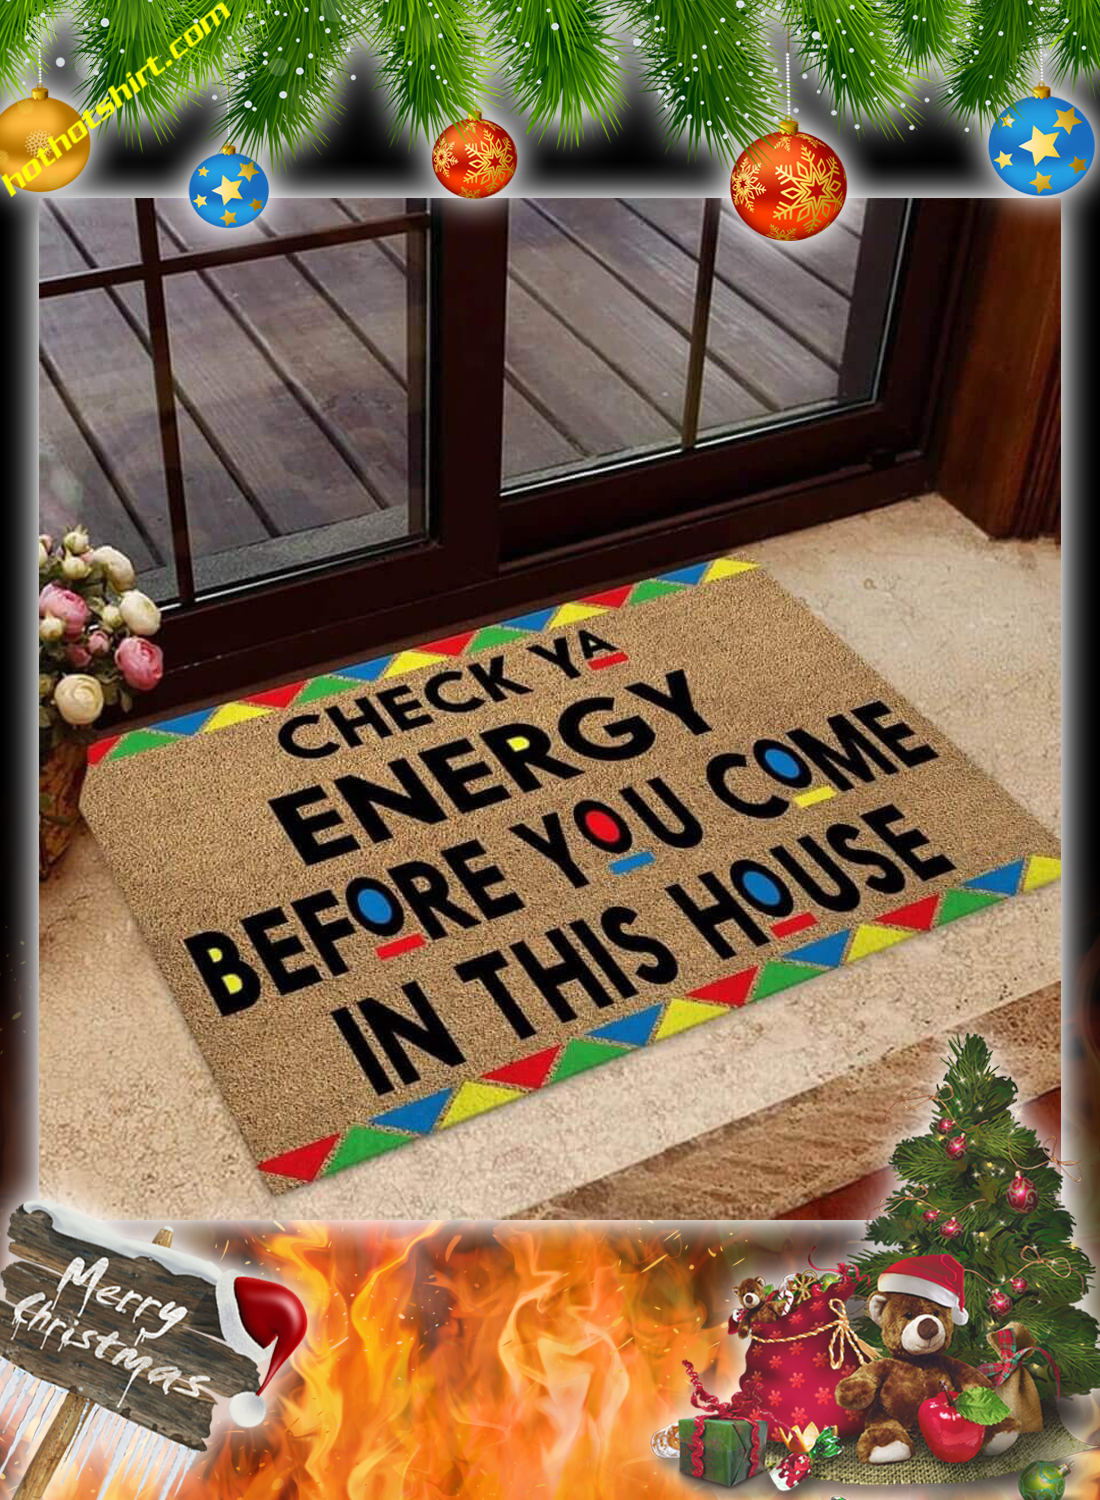 Check ya energy before you come in this house doormat 4